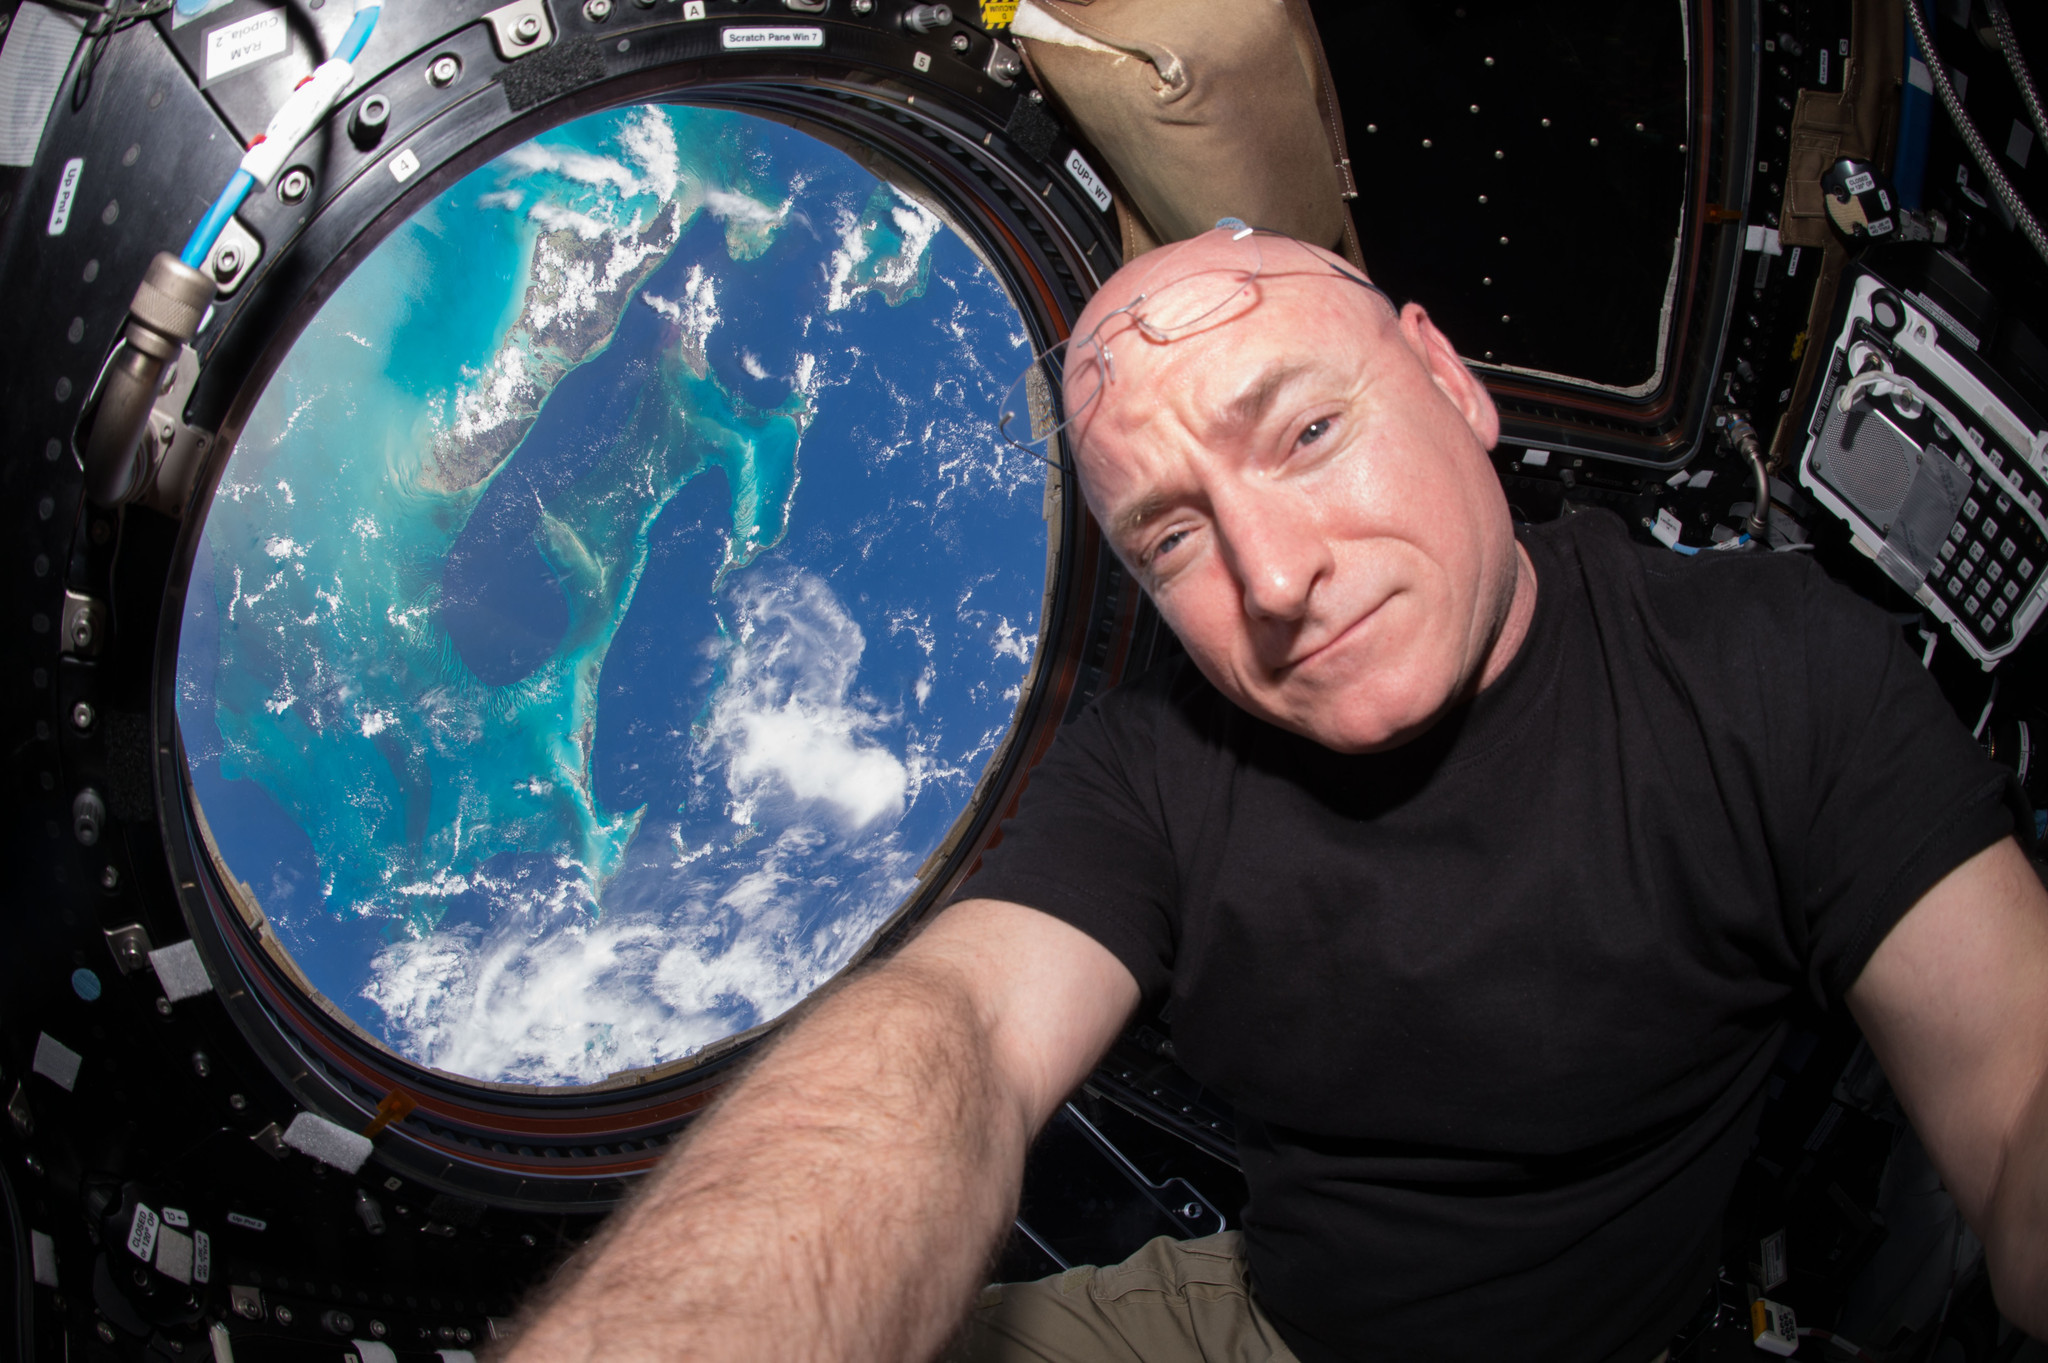 Astronaut scott kelly s photos from the international space station la times